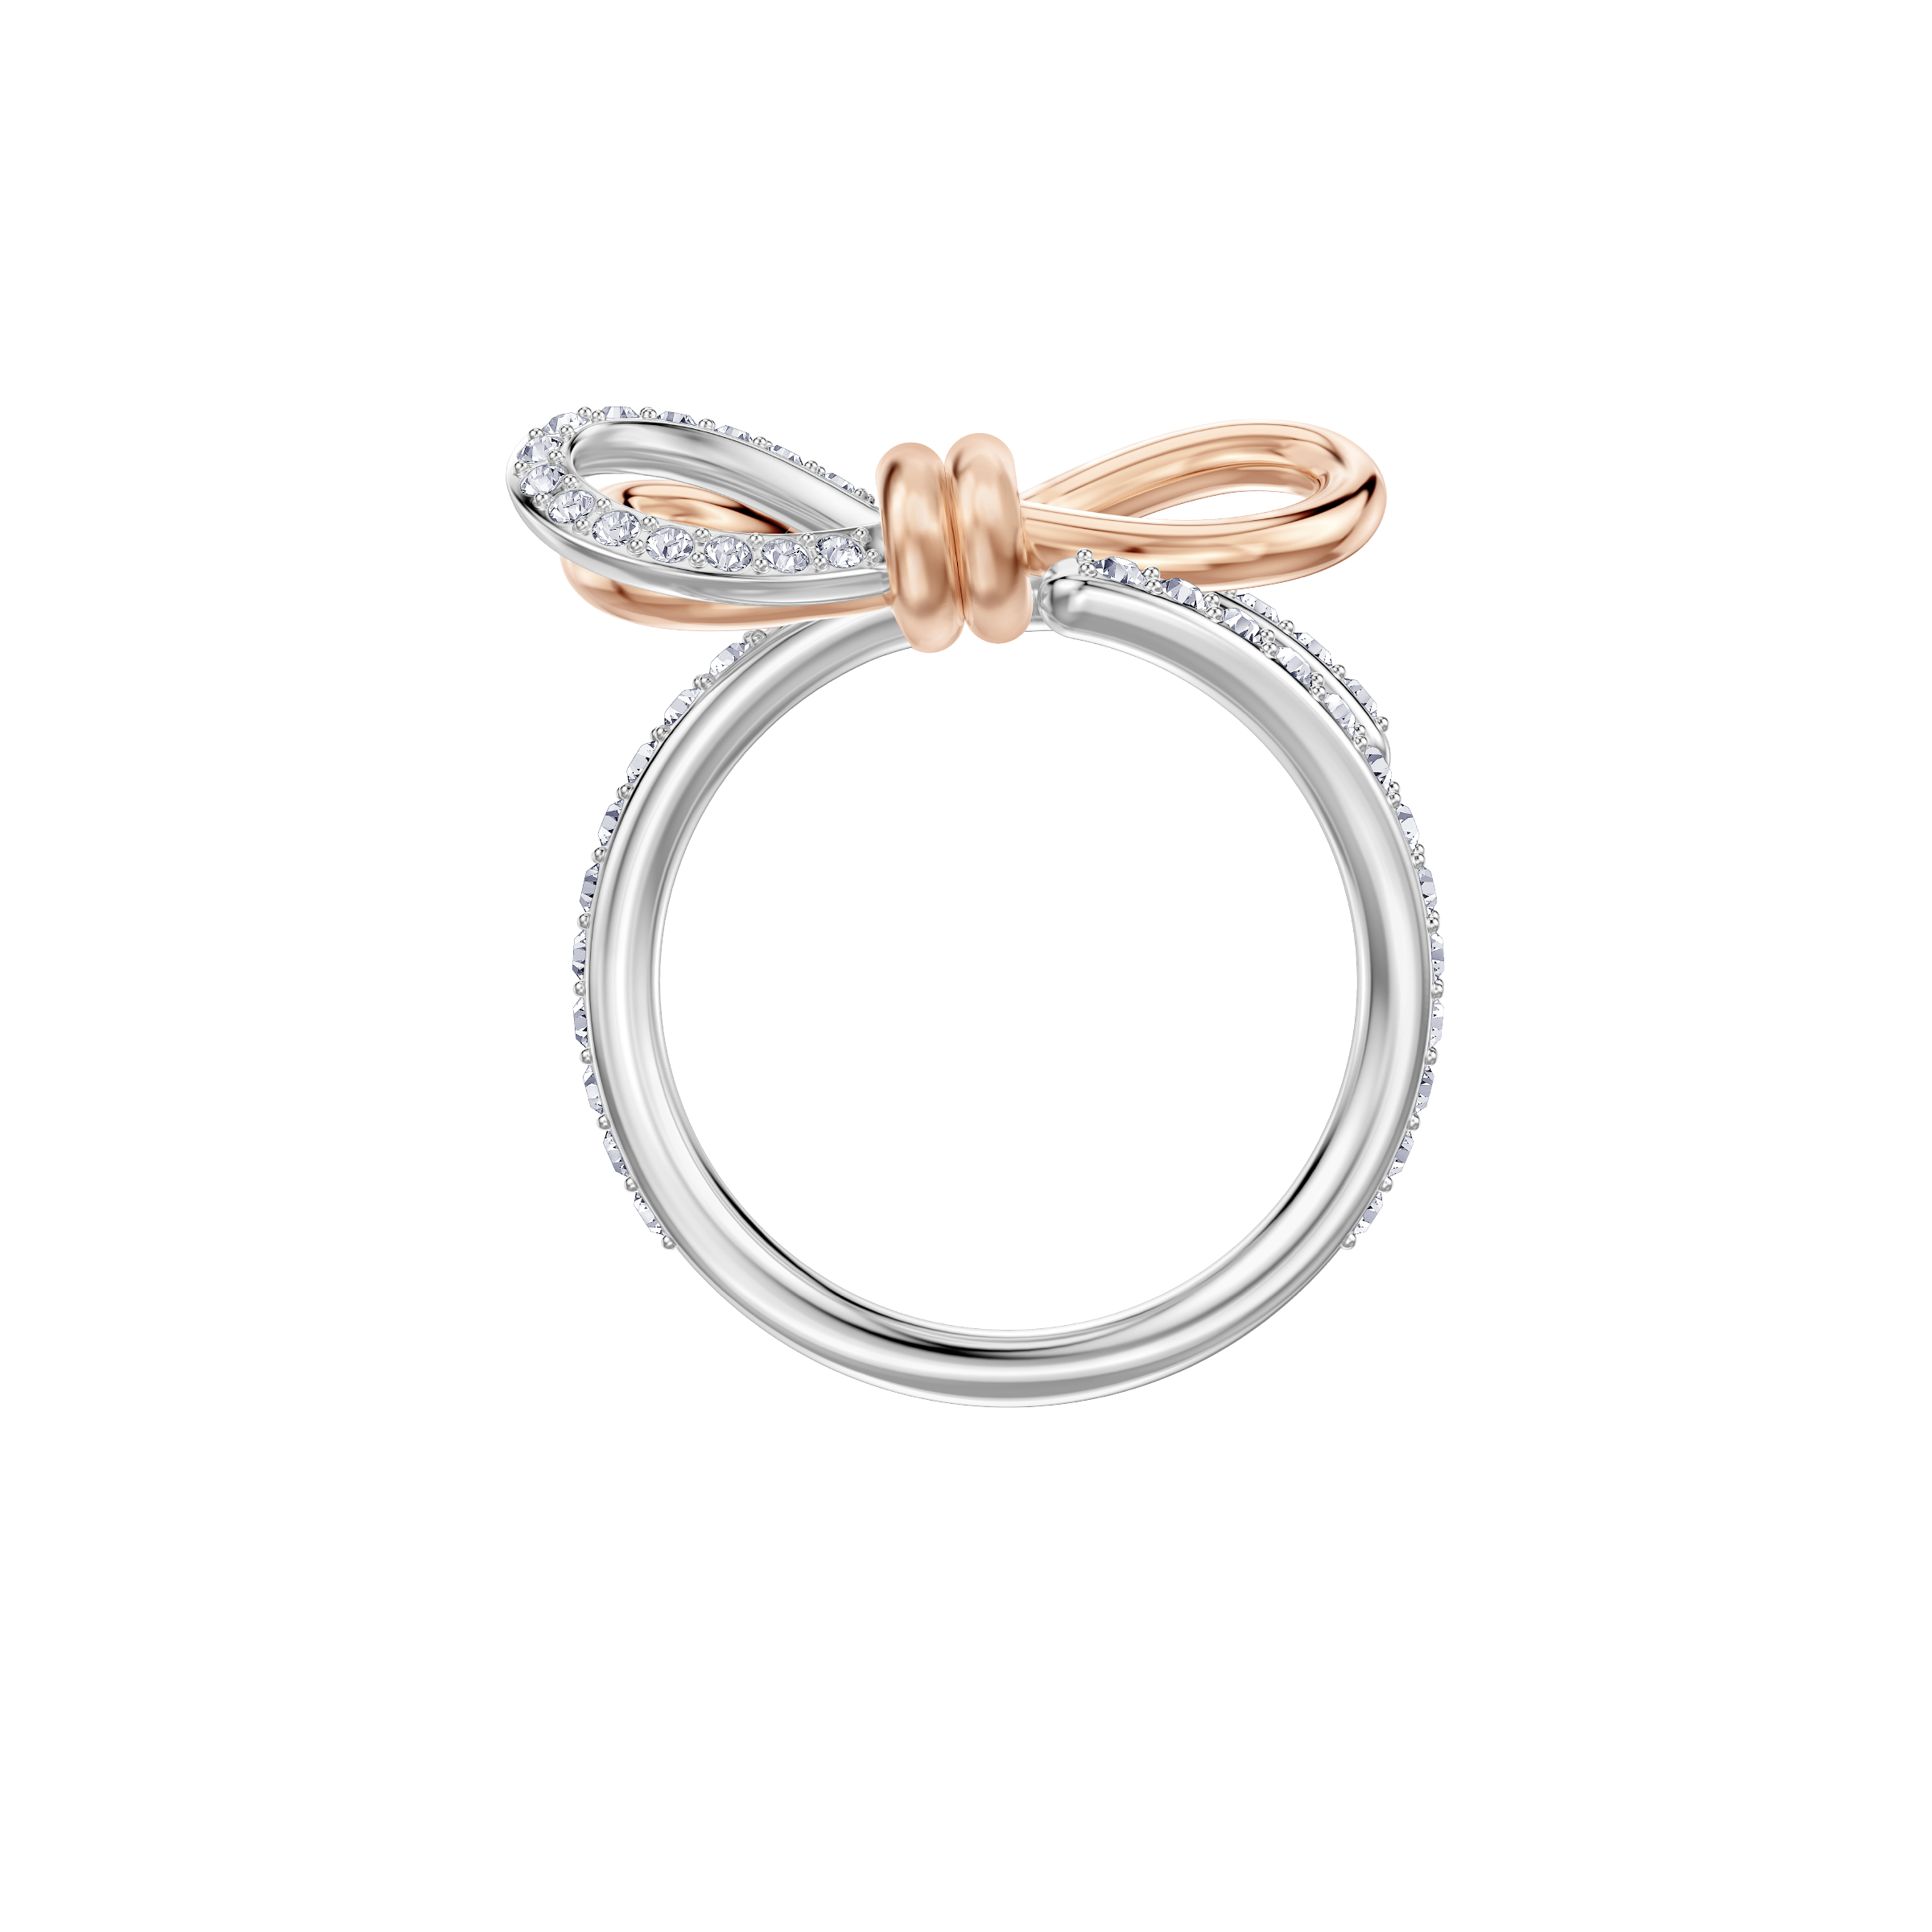 Lifelong Medium Bow Ring, White, Mixed plating